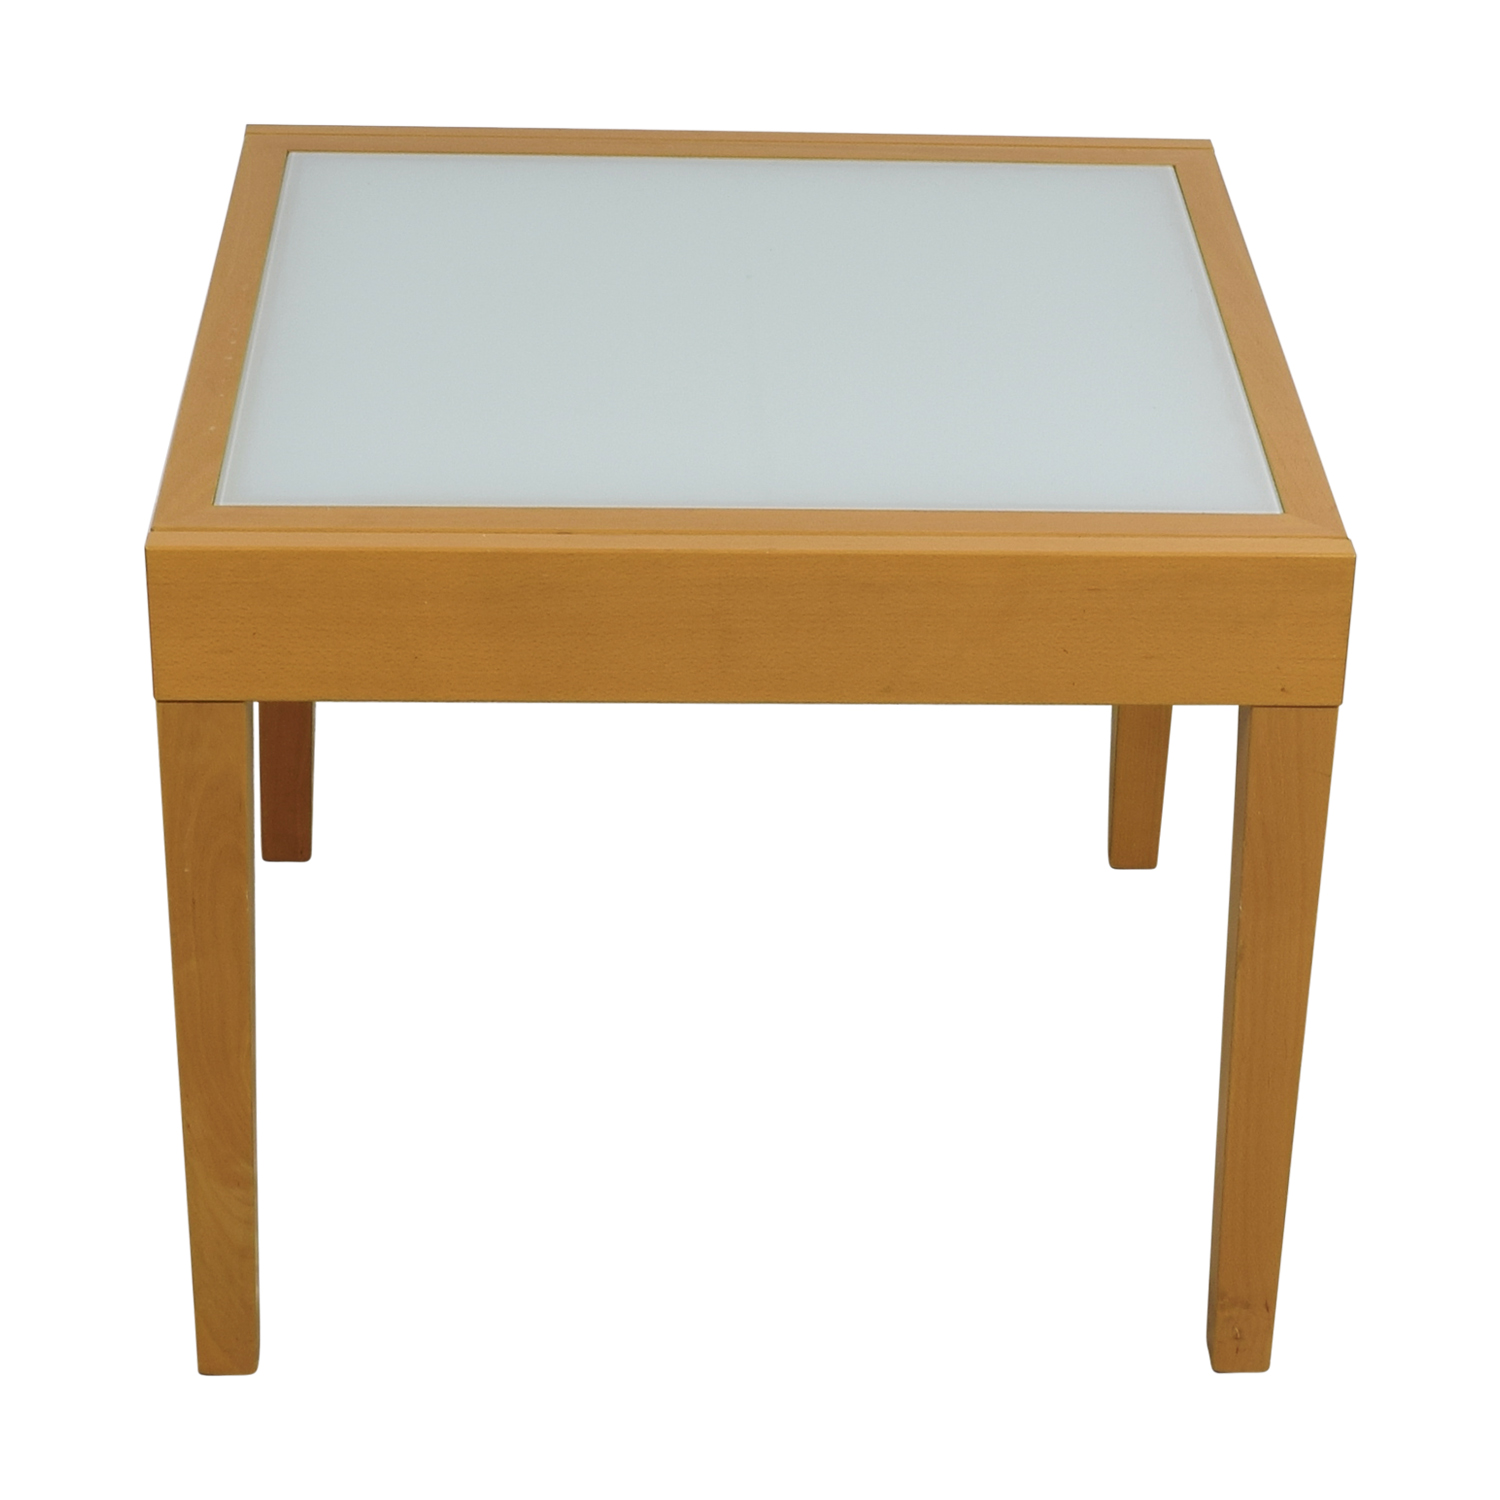 Design Within Reach Design Within Reach Spanna Extending Pine Wood and Glass Dining Table